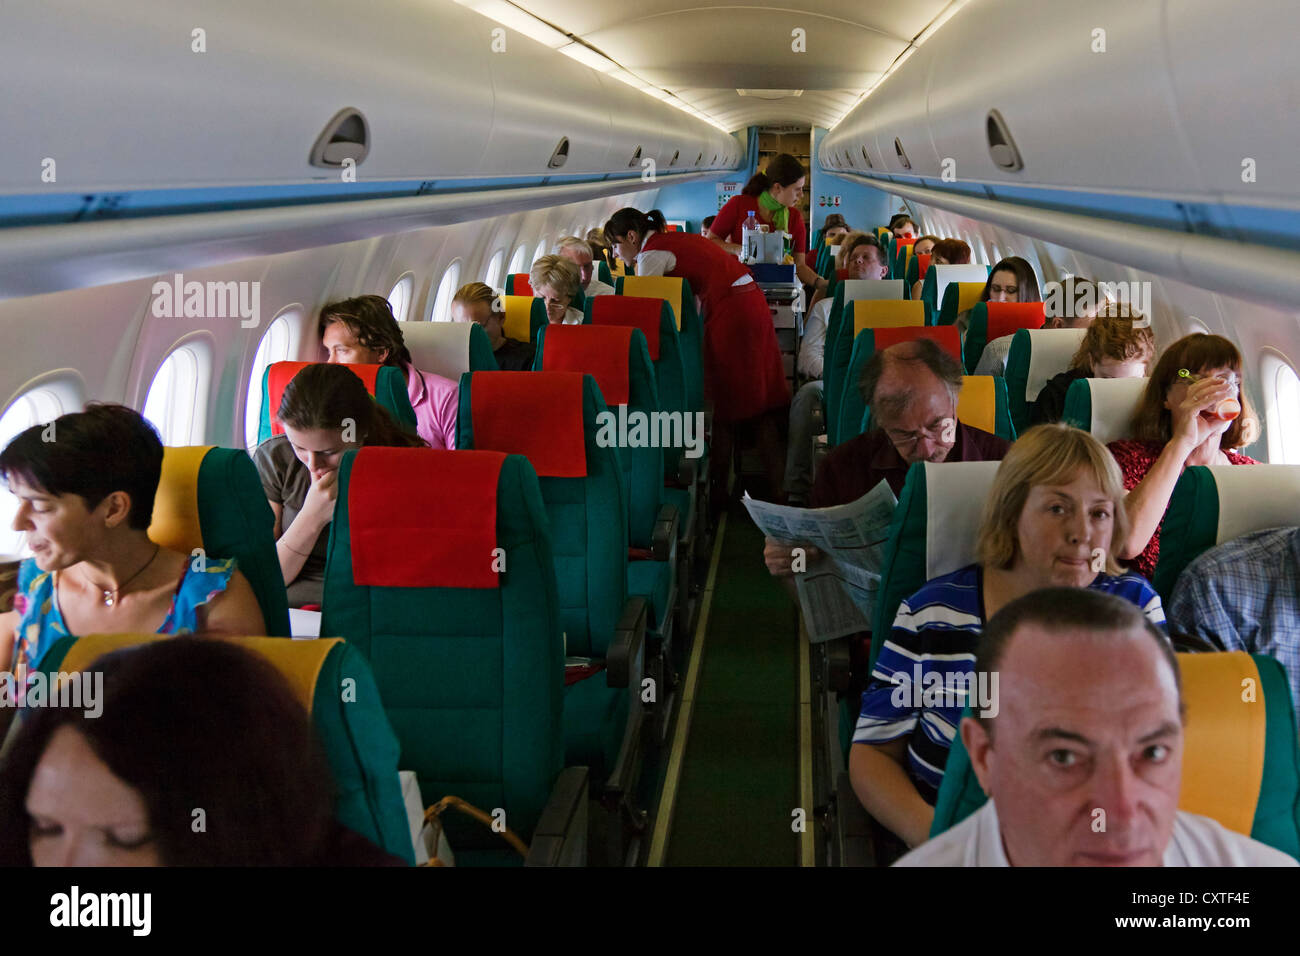 Passengers on flight, Austrian Airlines - Stock Image